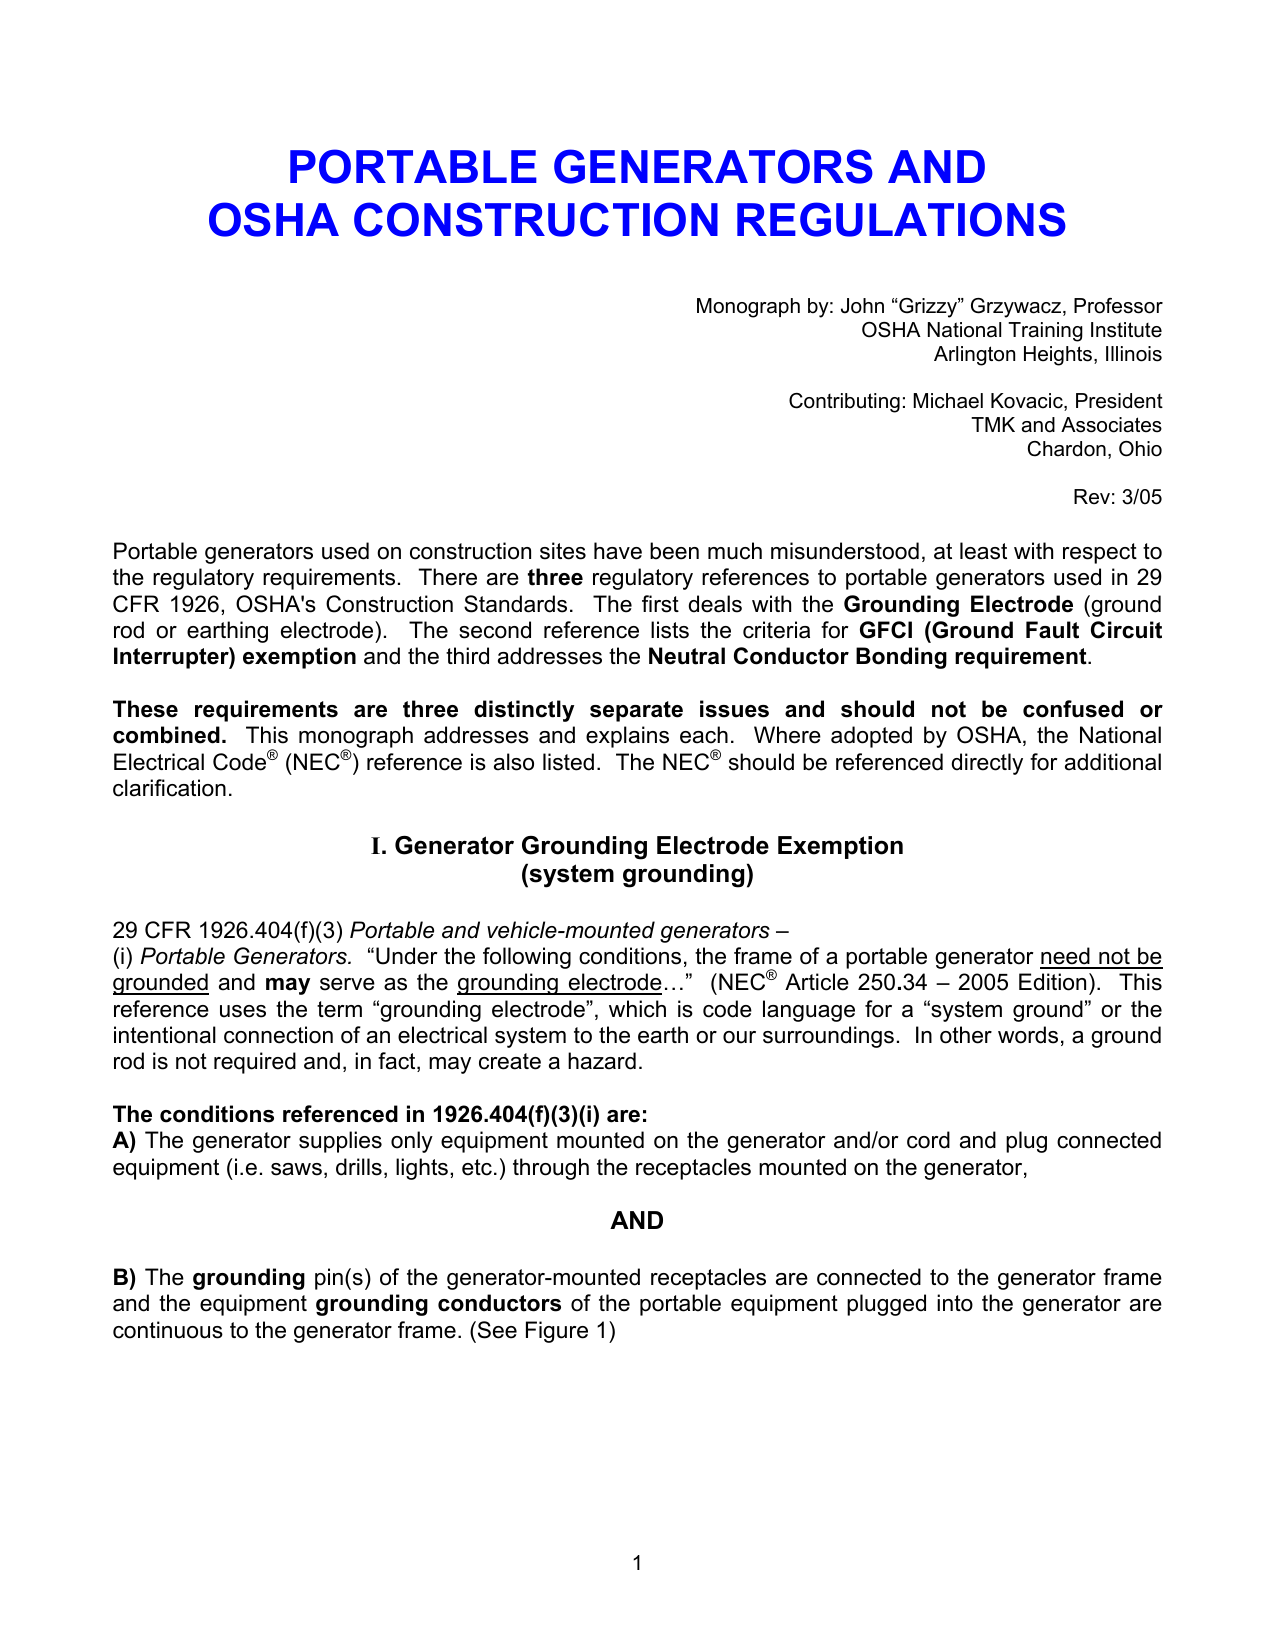 Osha Ground Fault Circuit Interrupters Wiring Library Interrupter Pluggfciground Interrupterplug Portable Generators And Construction Requirements